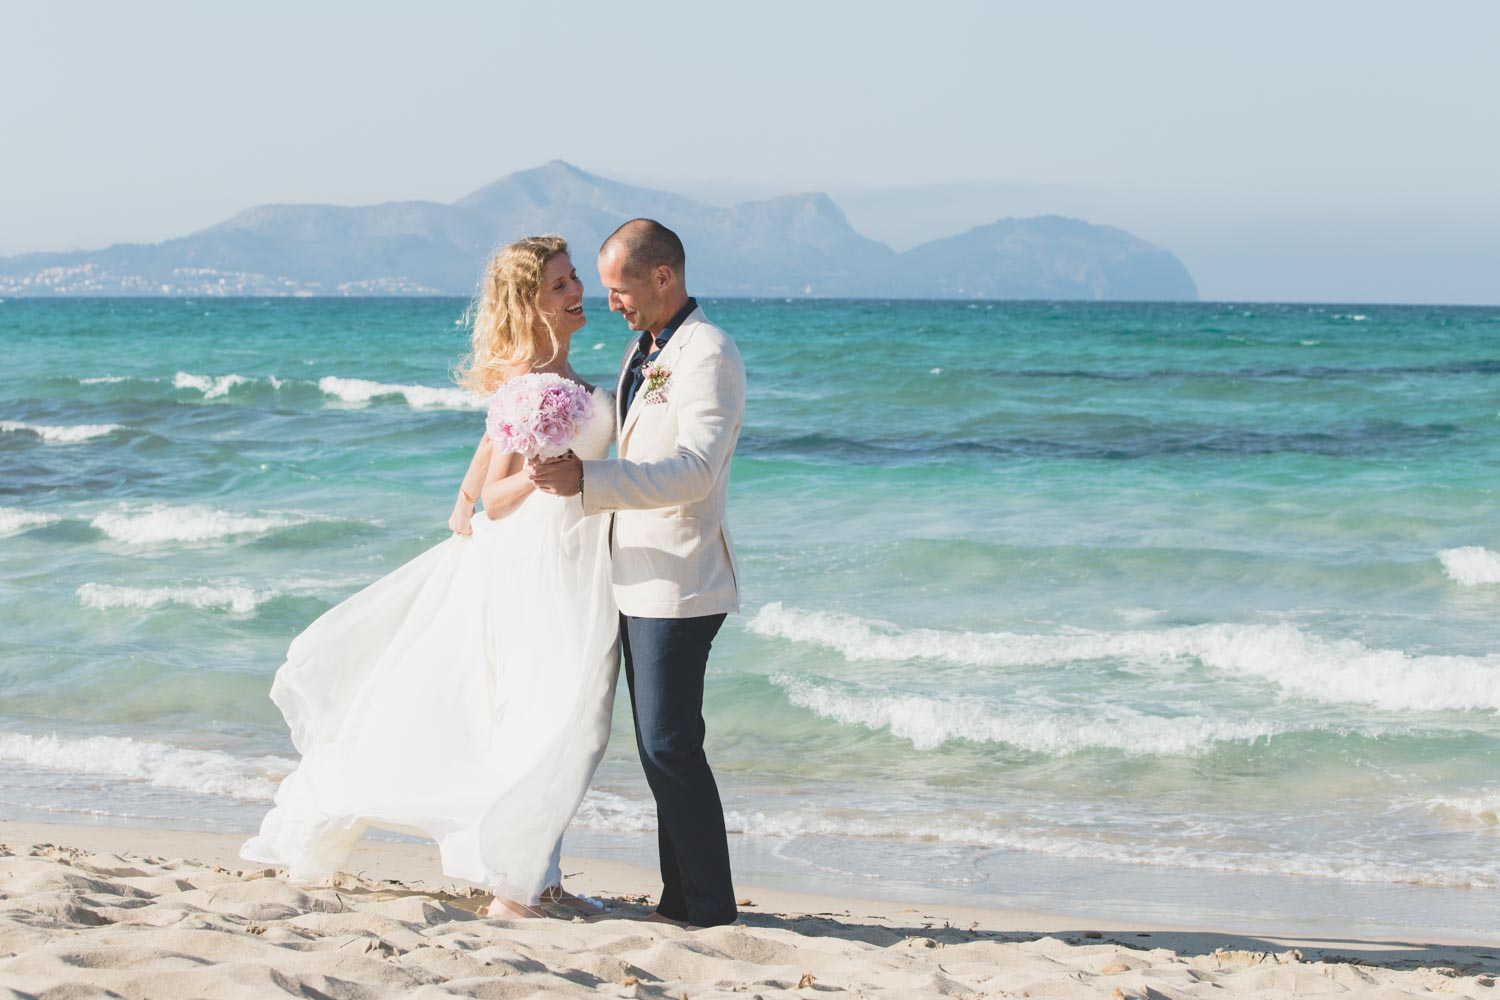 Beach wedding in Mallorca